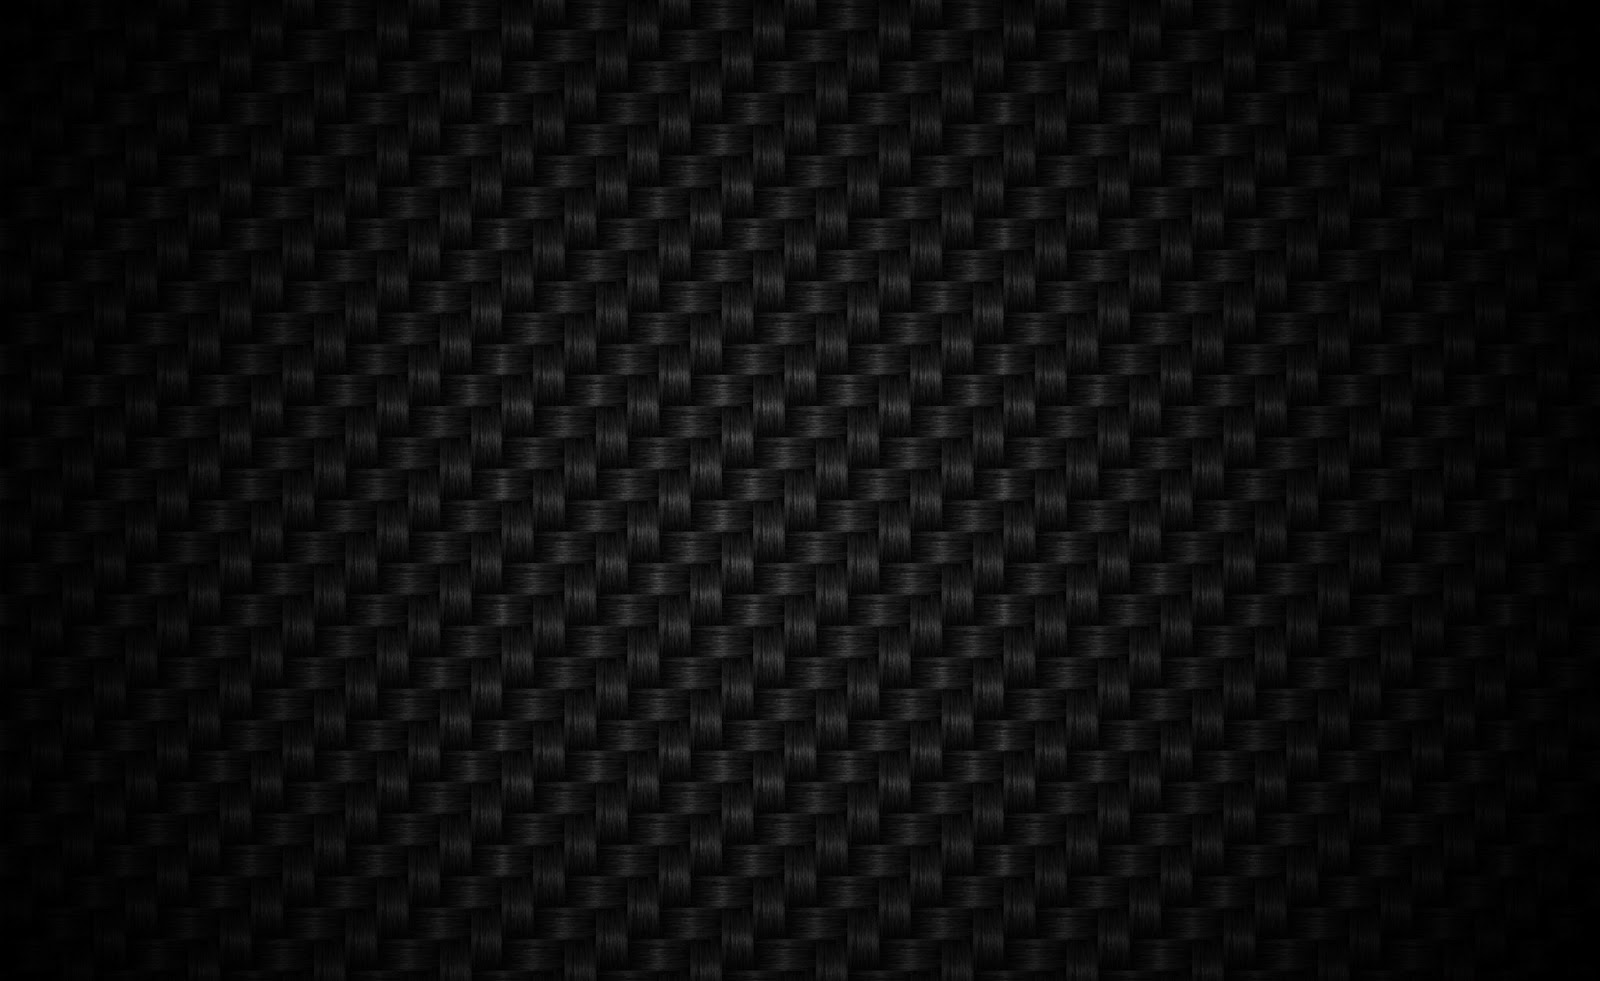 Black HD Wallpaper Backgrounds | Zone Wallpaper Backgrounds